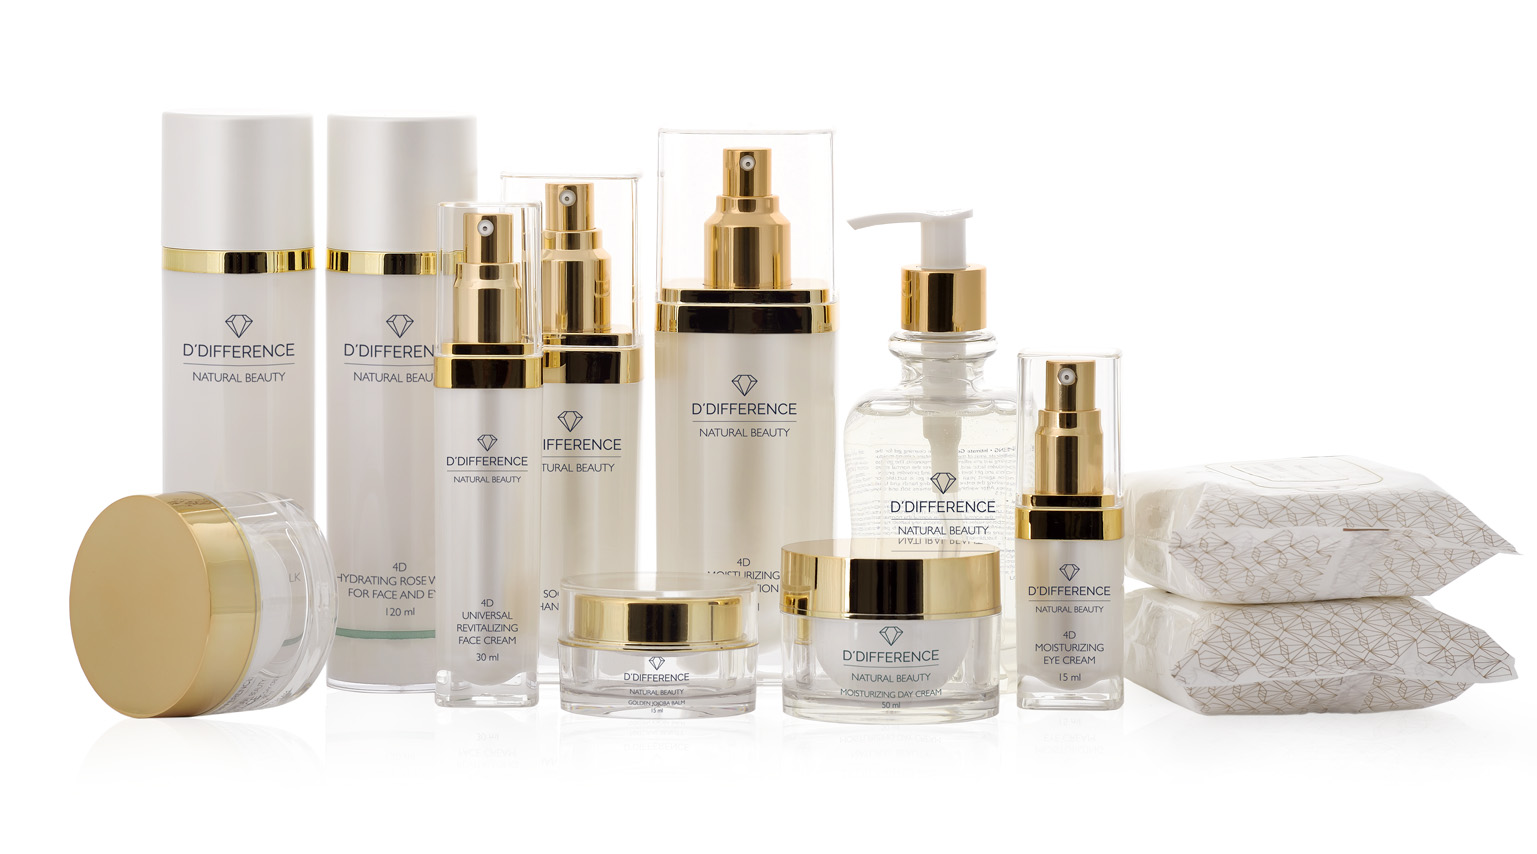 D'DIFFERENCE Natural Beauty skincare range.